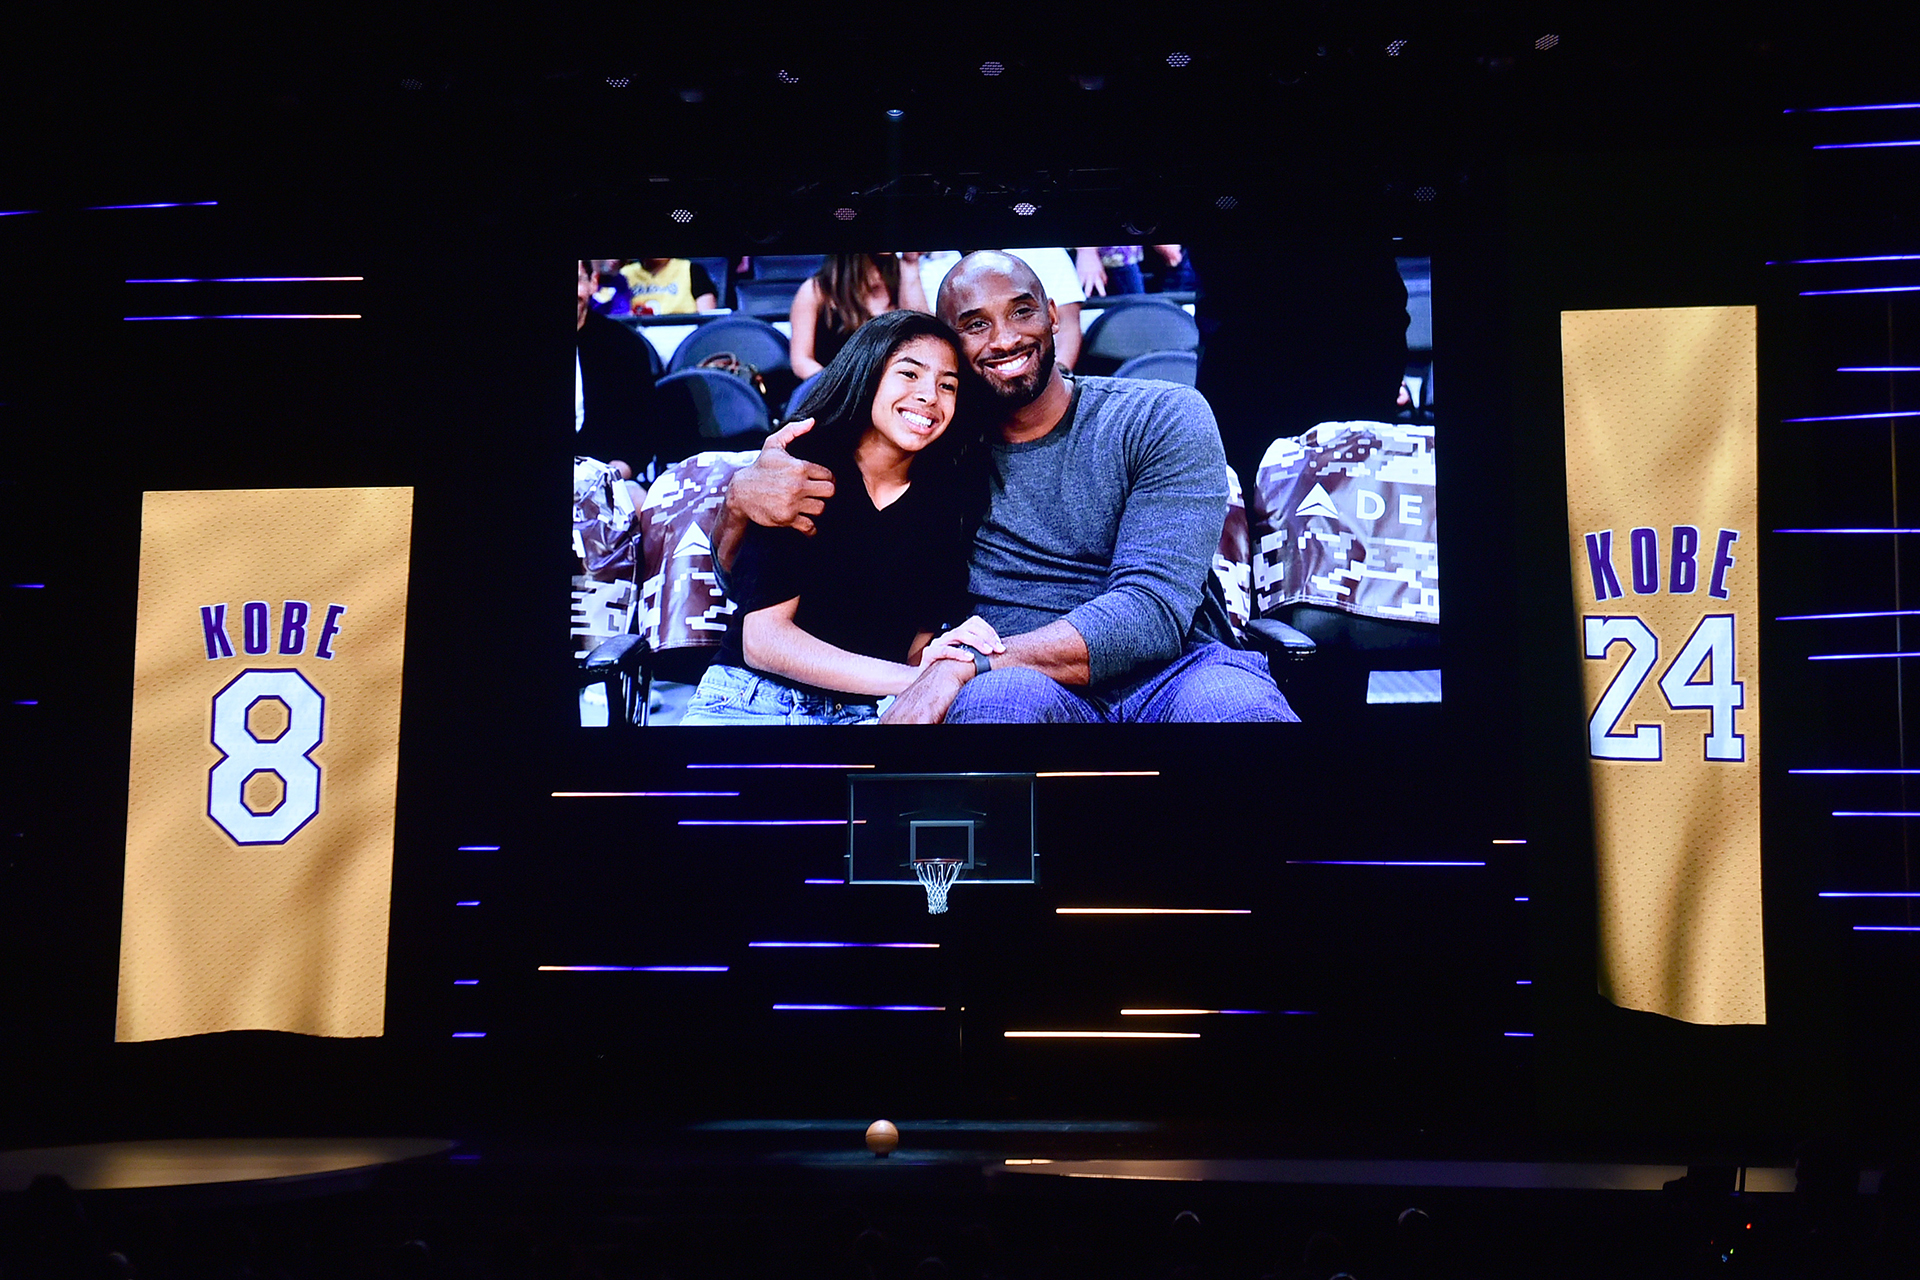 The Significance Behind Why Kobe Bryant and Gianna's Public Memorial Is Happening Monday